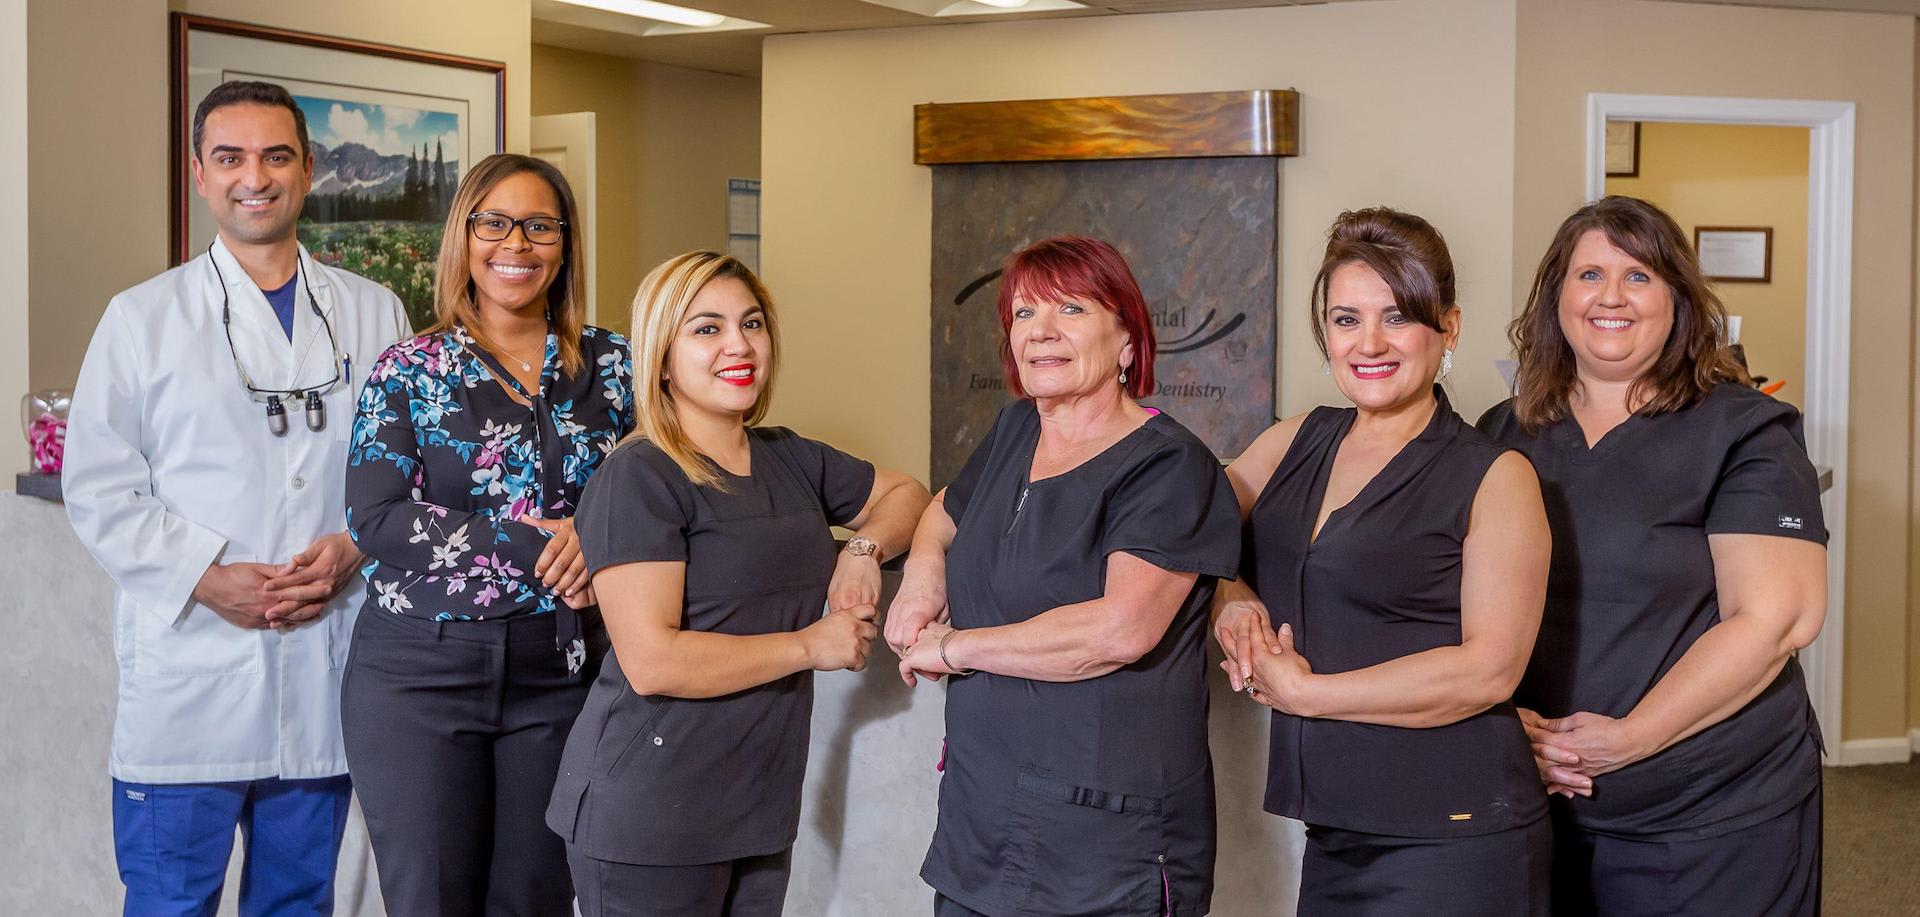 Providing Family and Cosmetic Dentistry in Fairfax